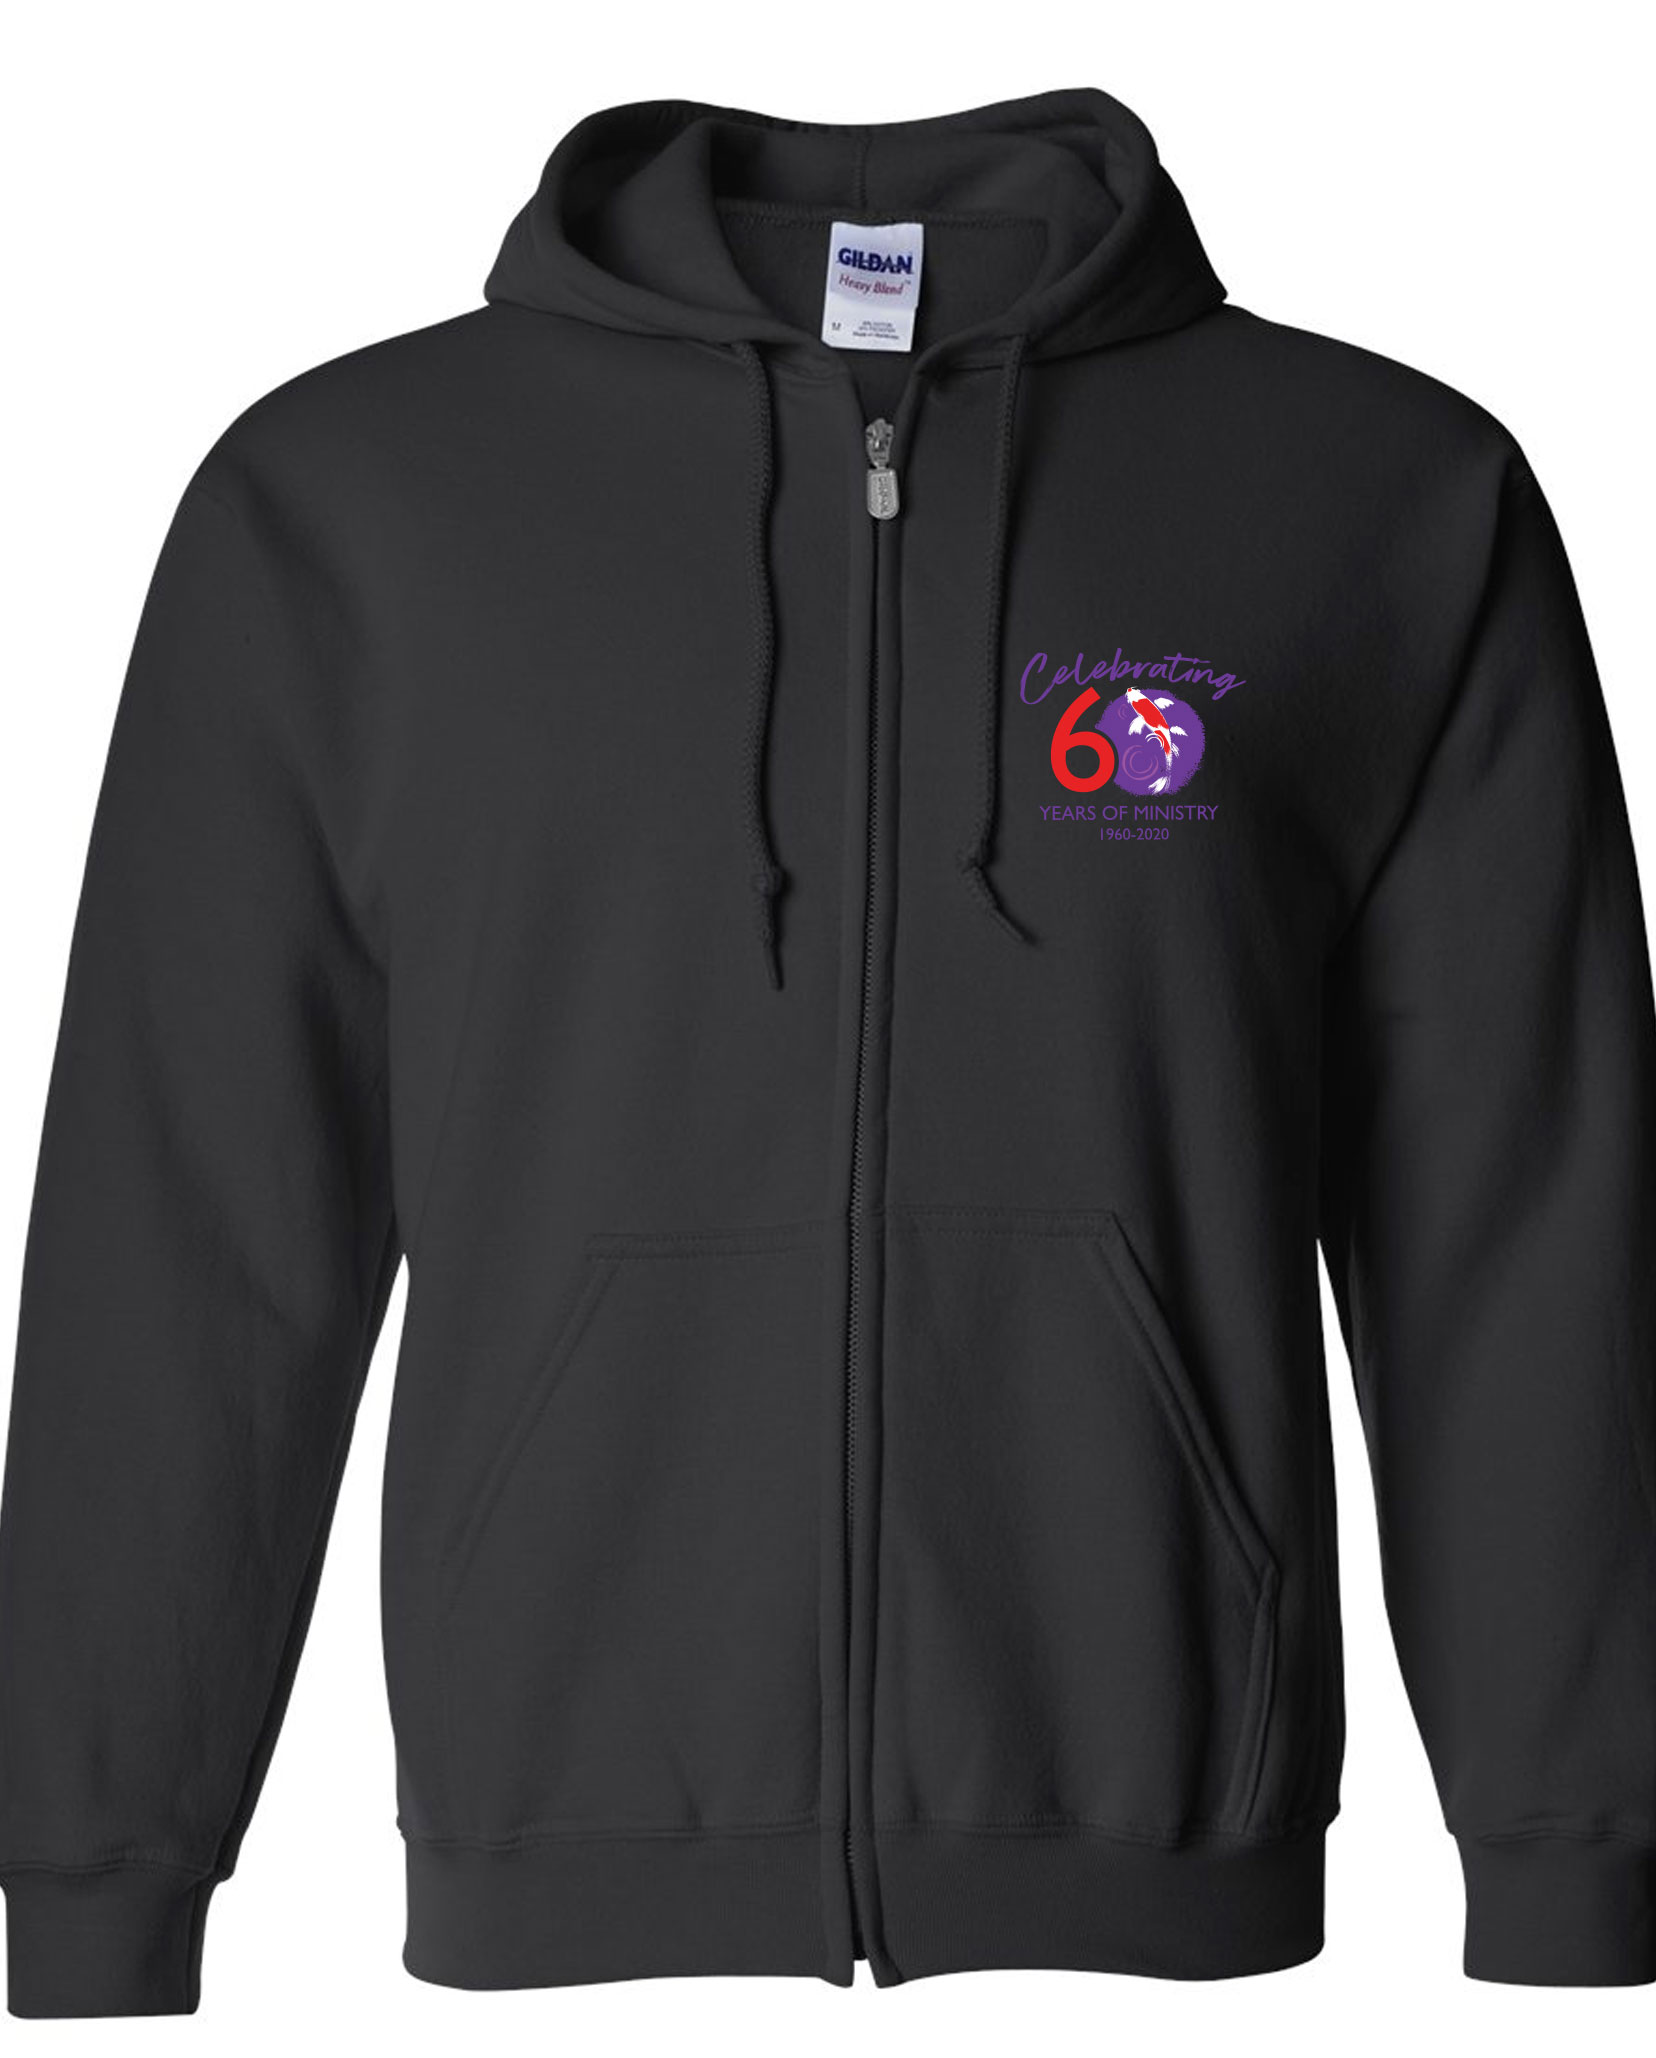 Faith UMC 60th Anniversary Full-Zip Jacket With Hoodie